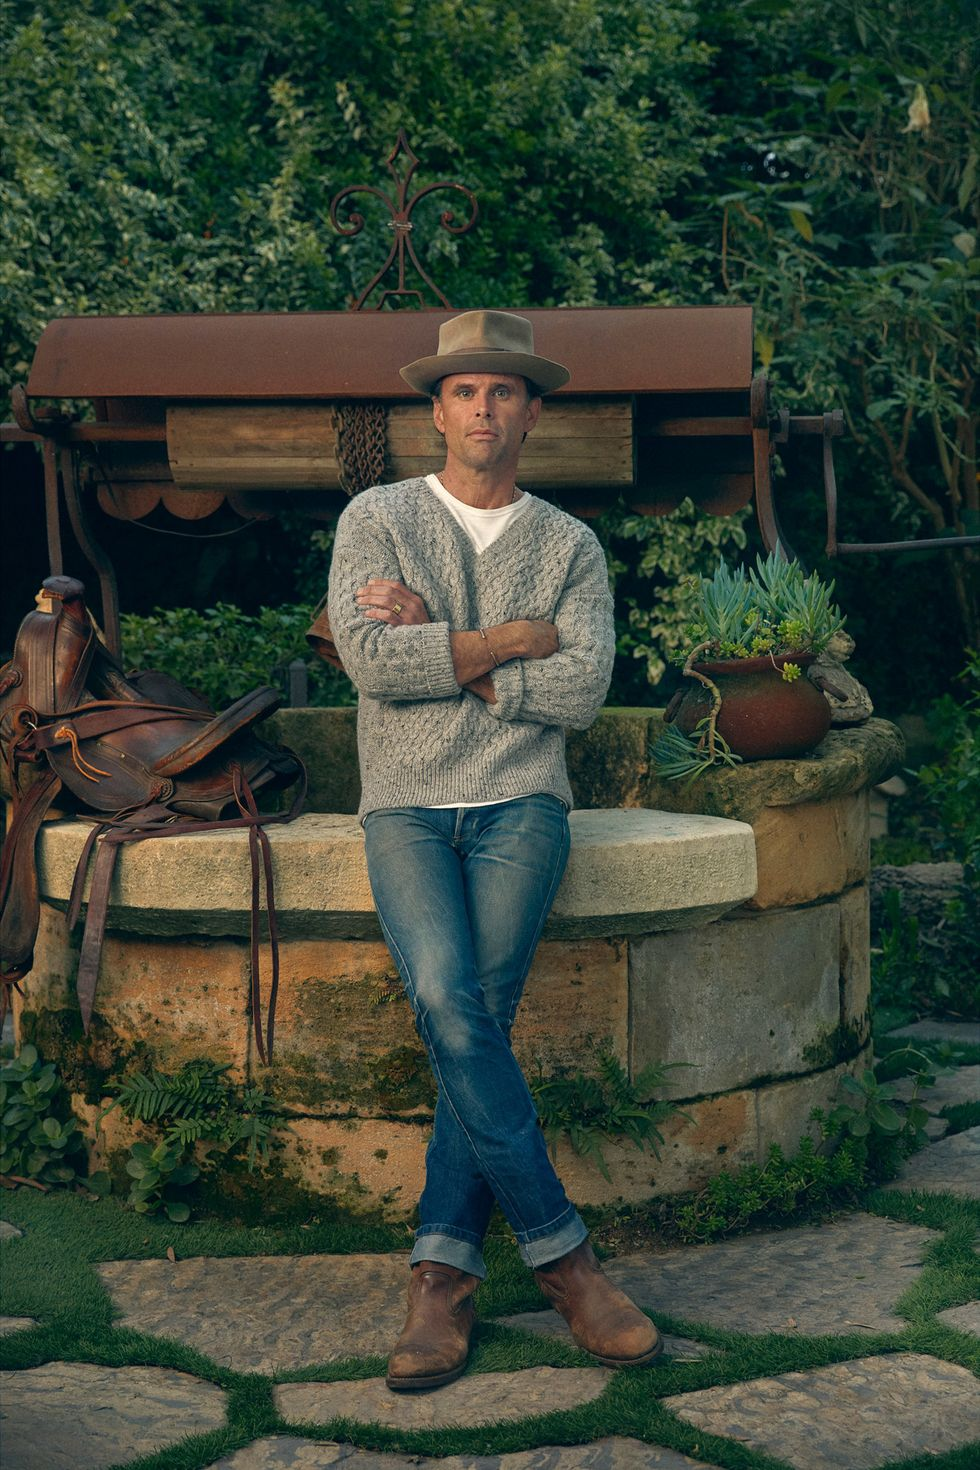 Walton Goggins leaning against the edge of a water well with a saddle beside him.